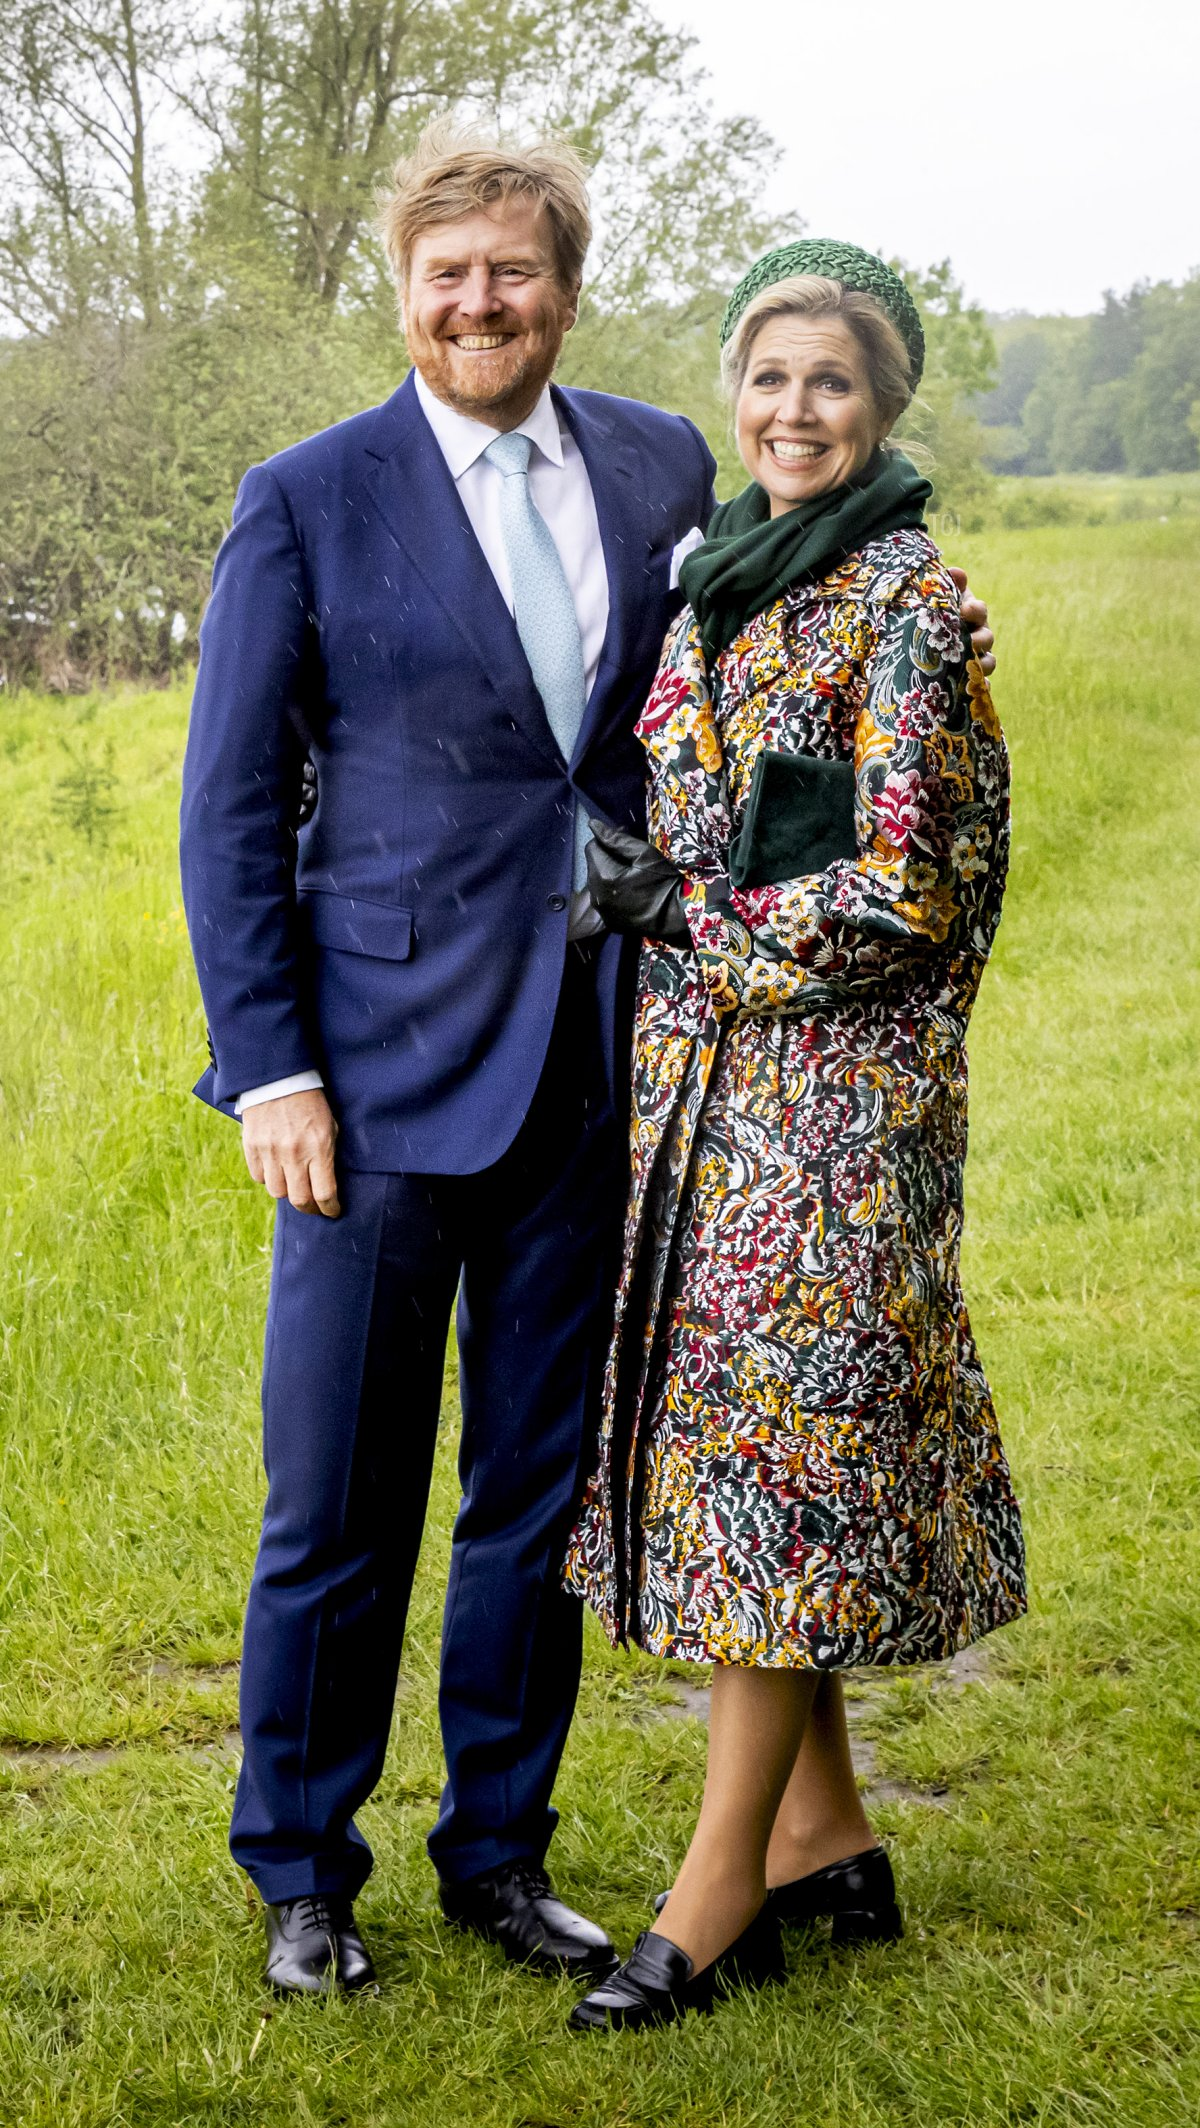 King Willem-Alexander of The Netherlands and Queen Maxima of The Netherlands visit Nationaal Park de Maasduinen during their region visit to North-Limburg on May 27, 2021 in Venlo, Netherlands